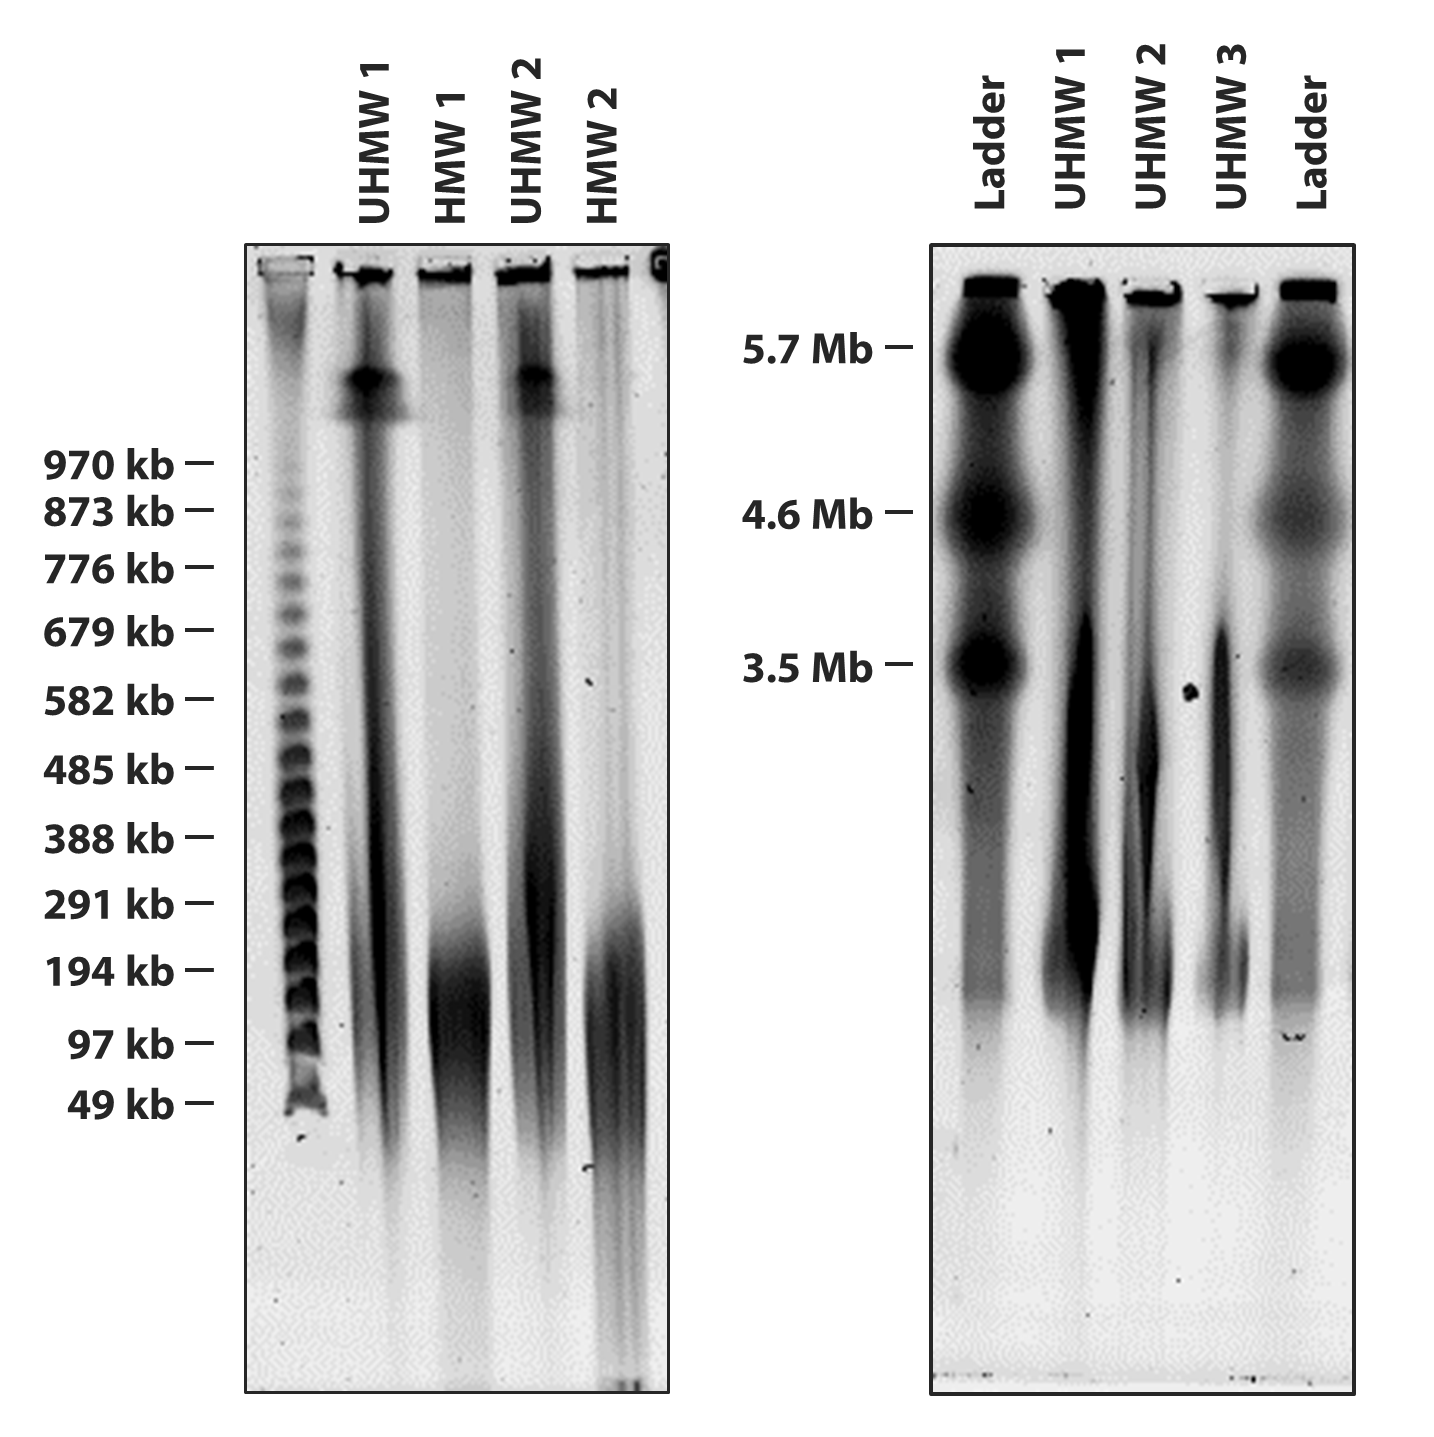 HMW DNA Extraction, Long-Read Sequencing